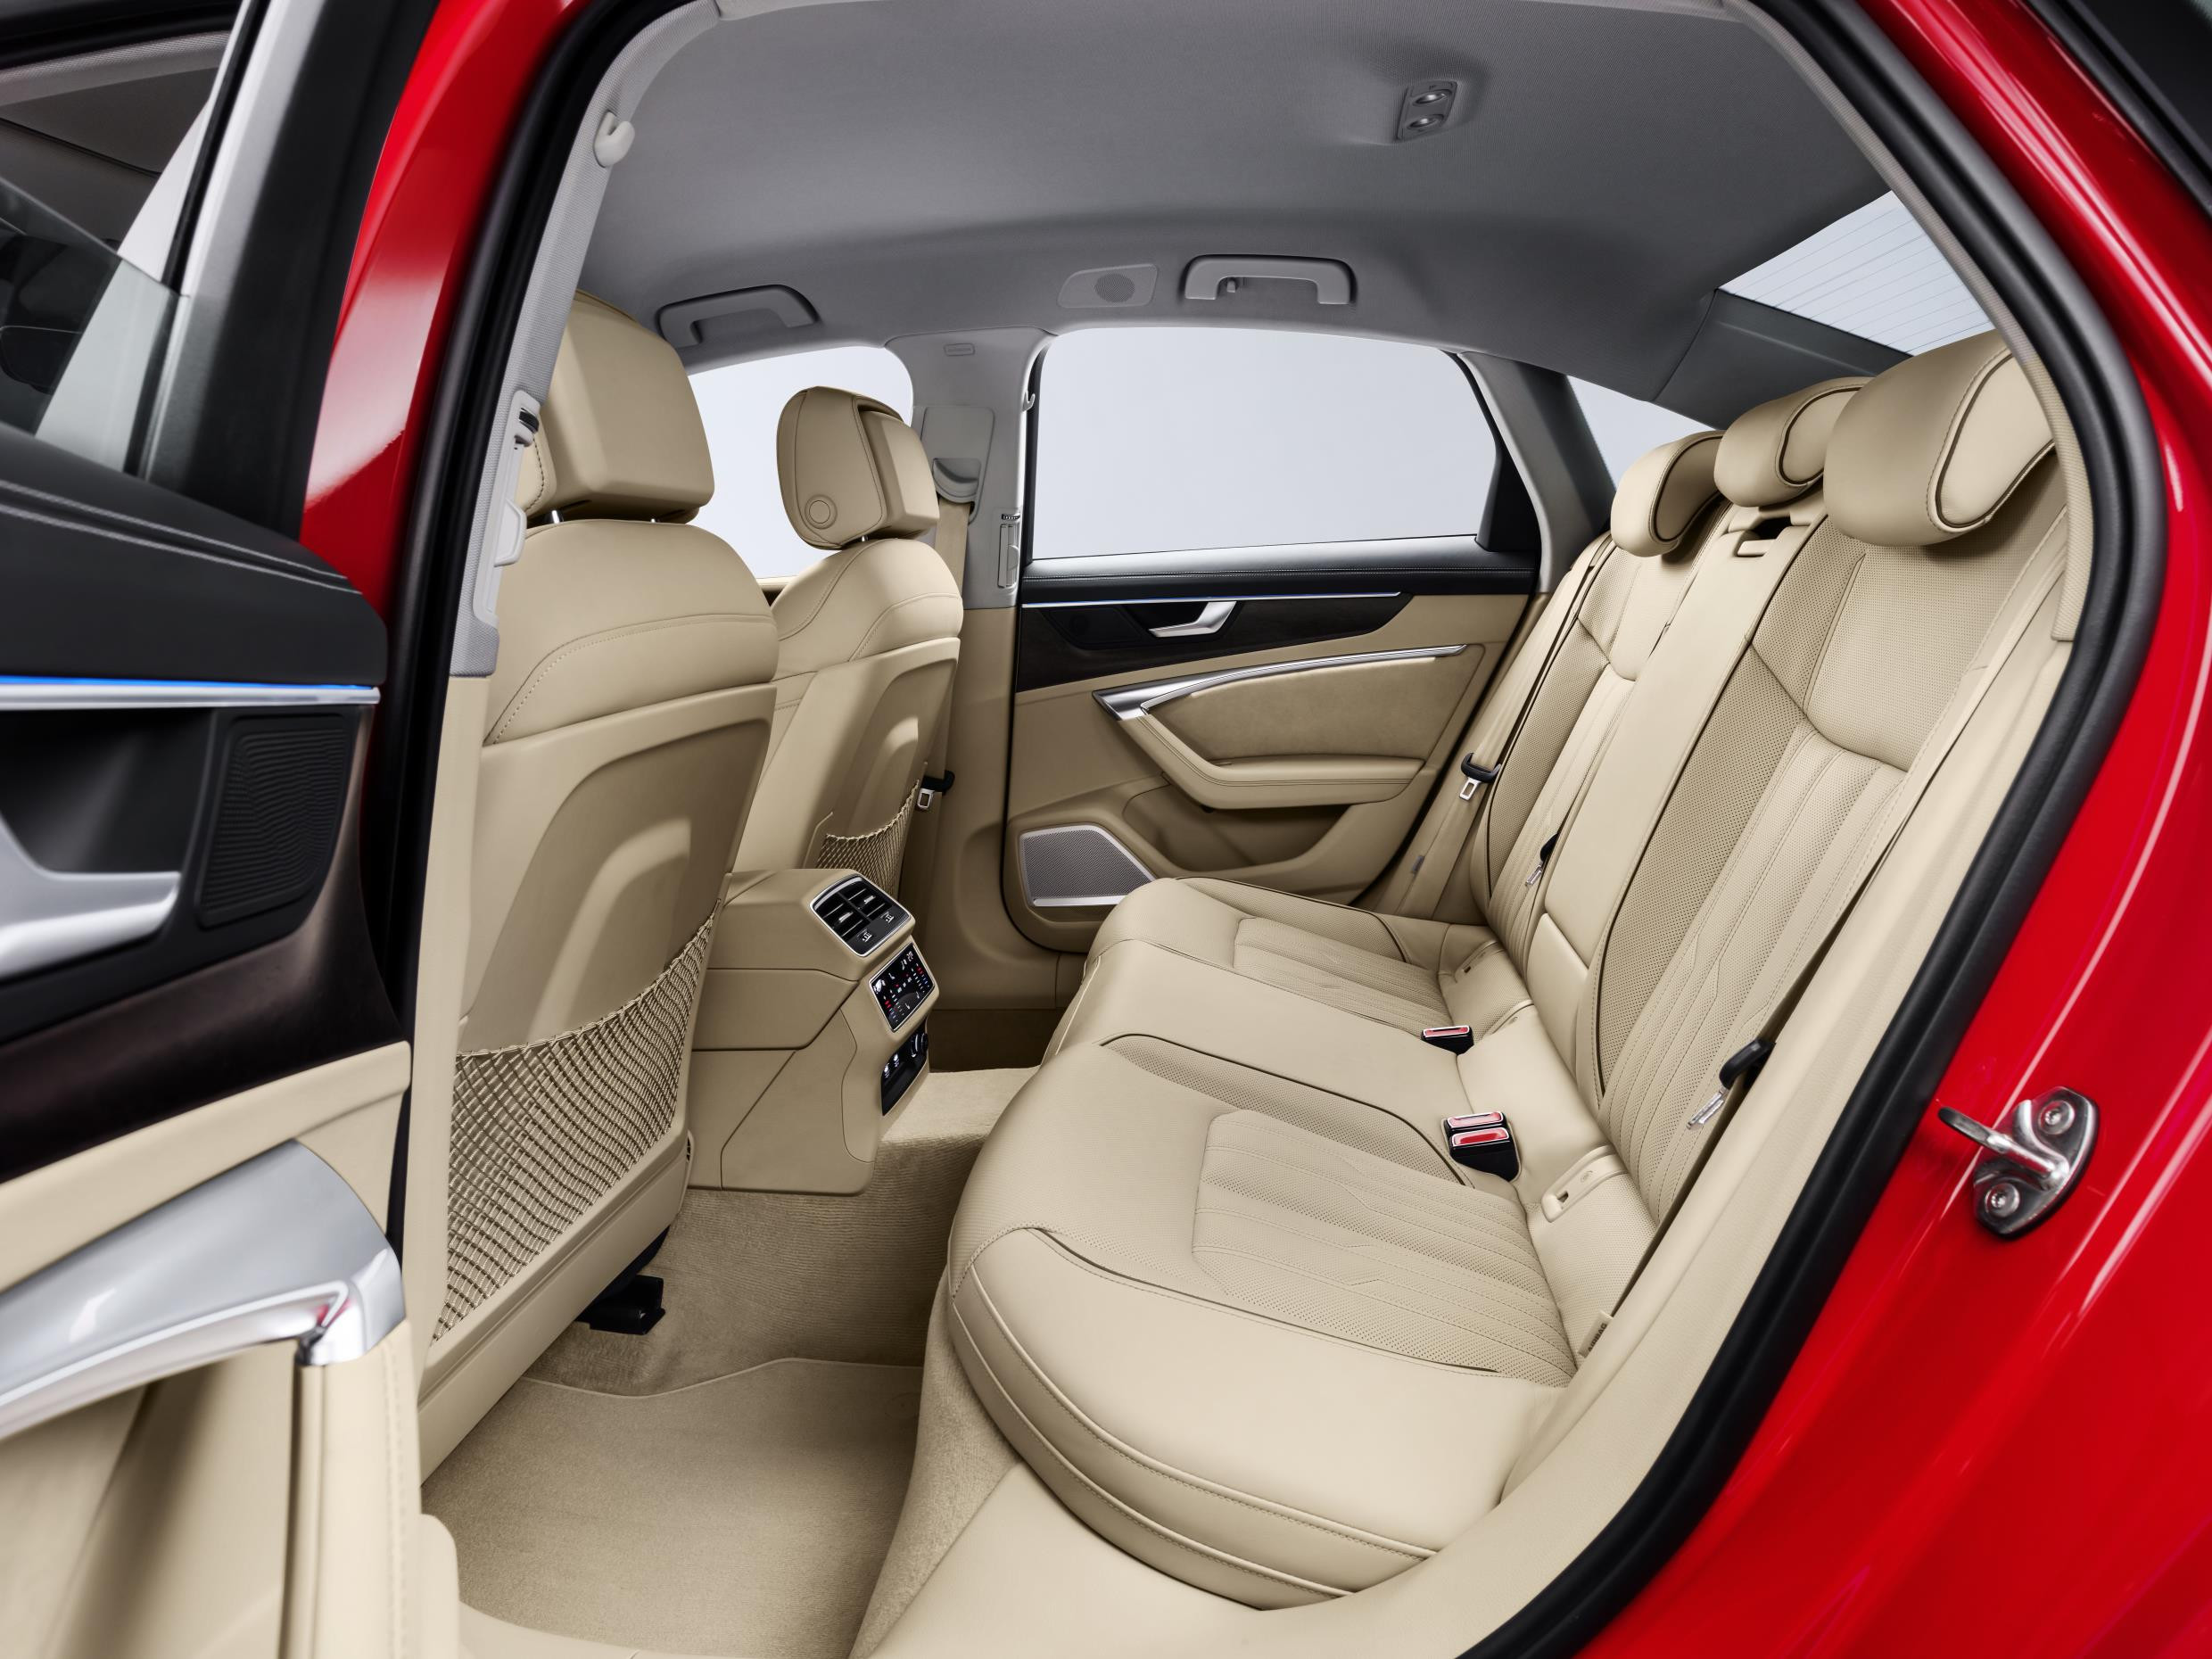 Cream leather rear seats in a red Audi A6